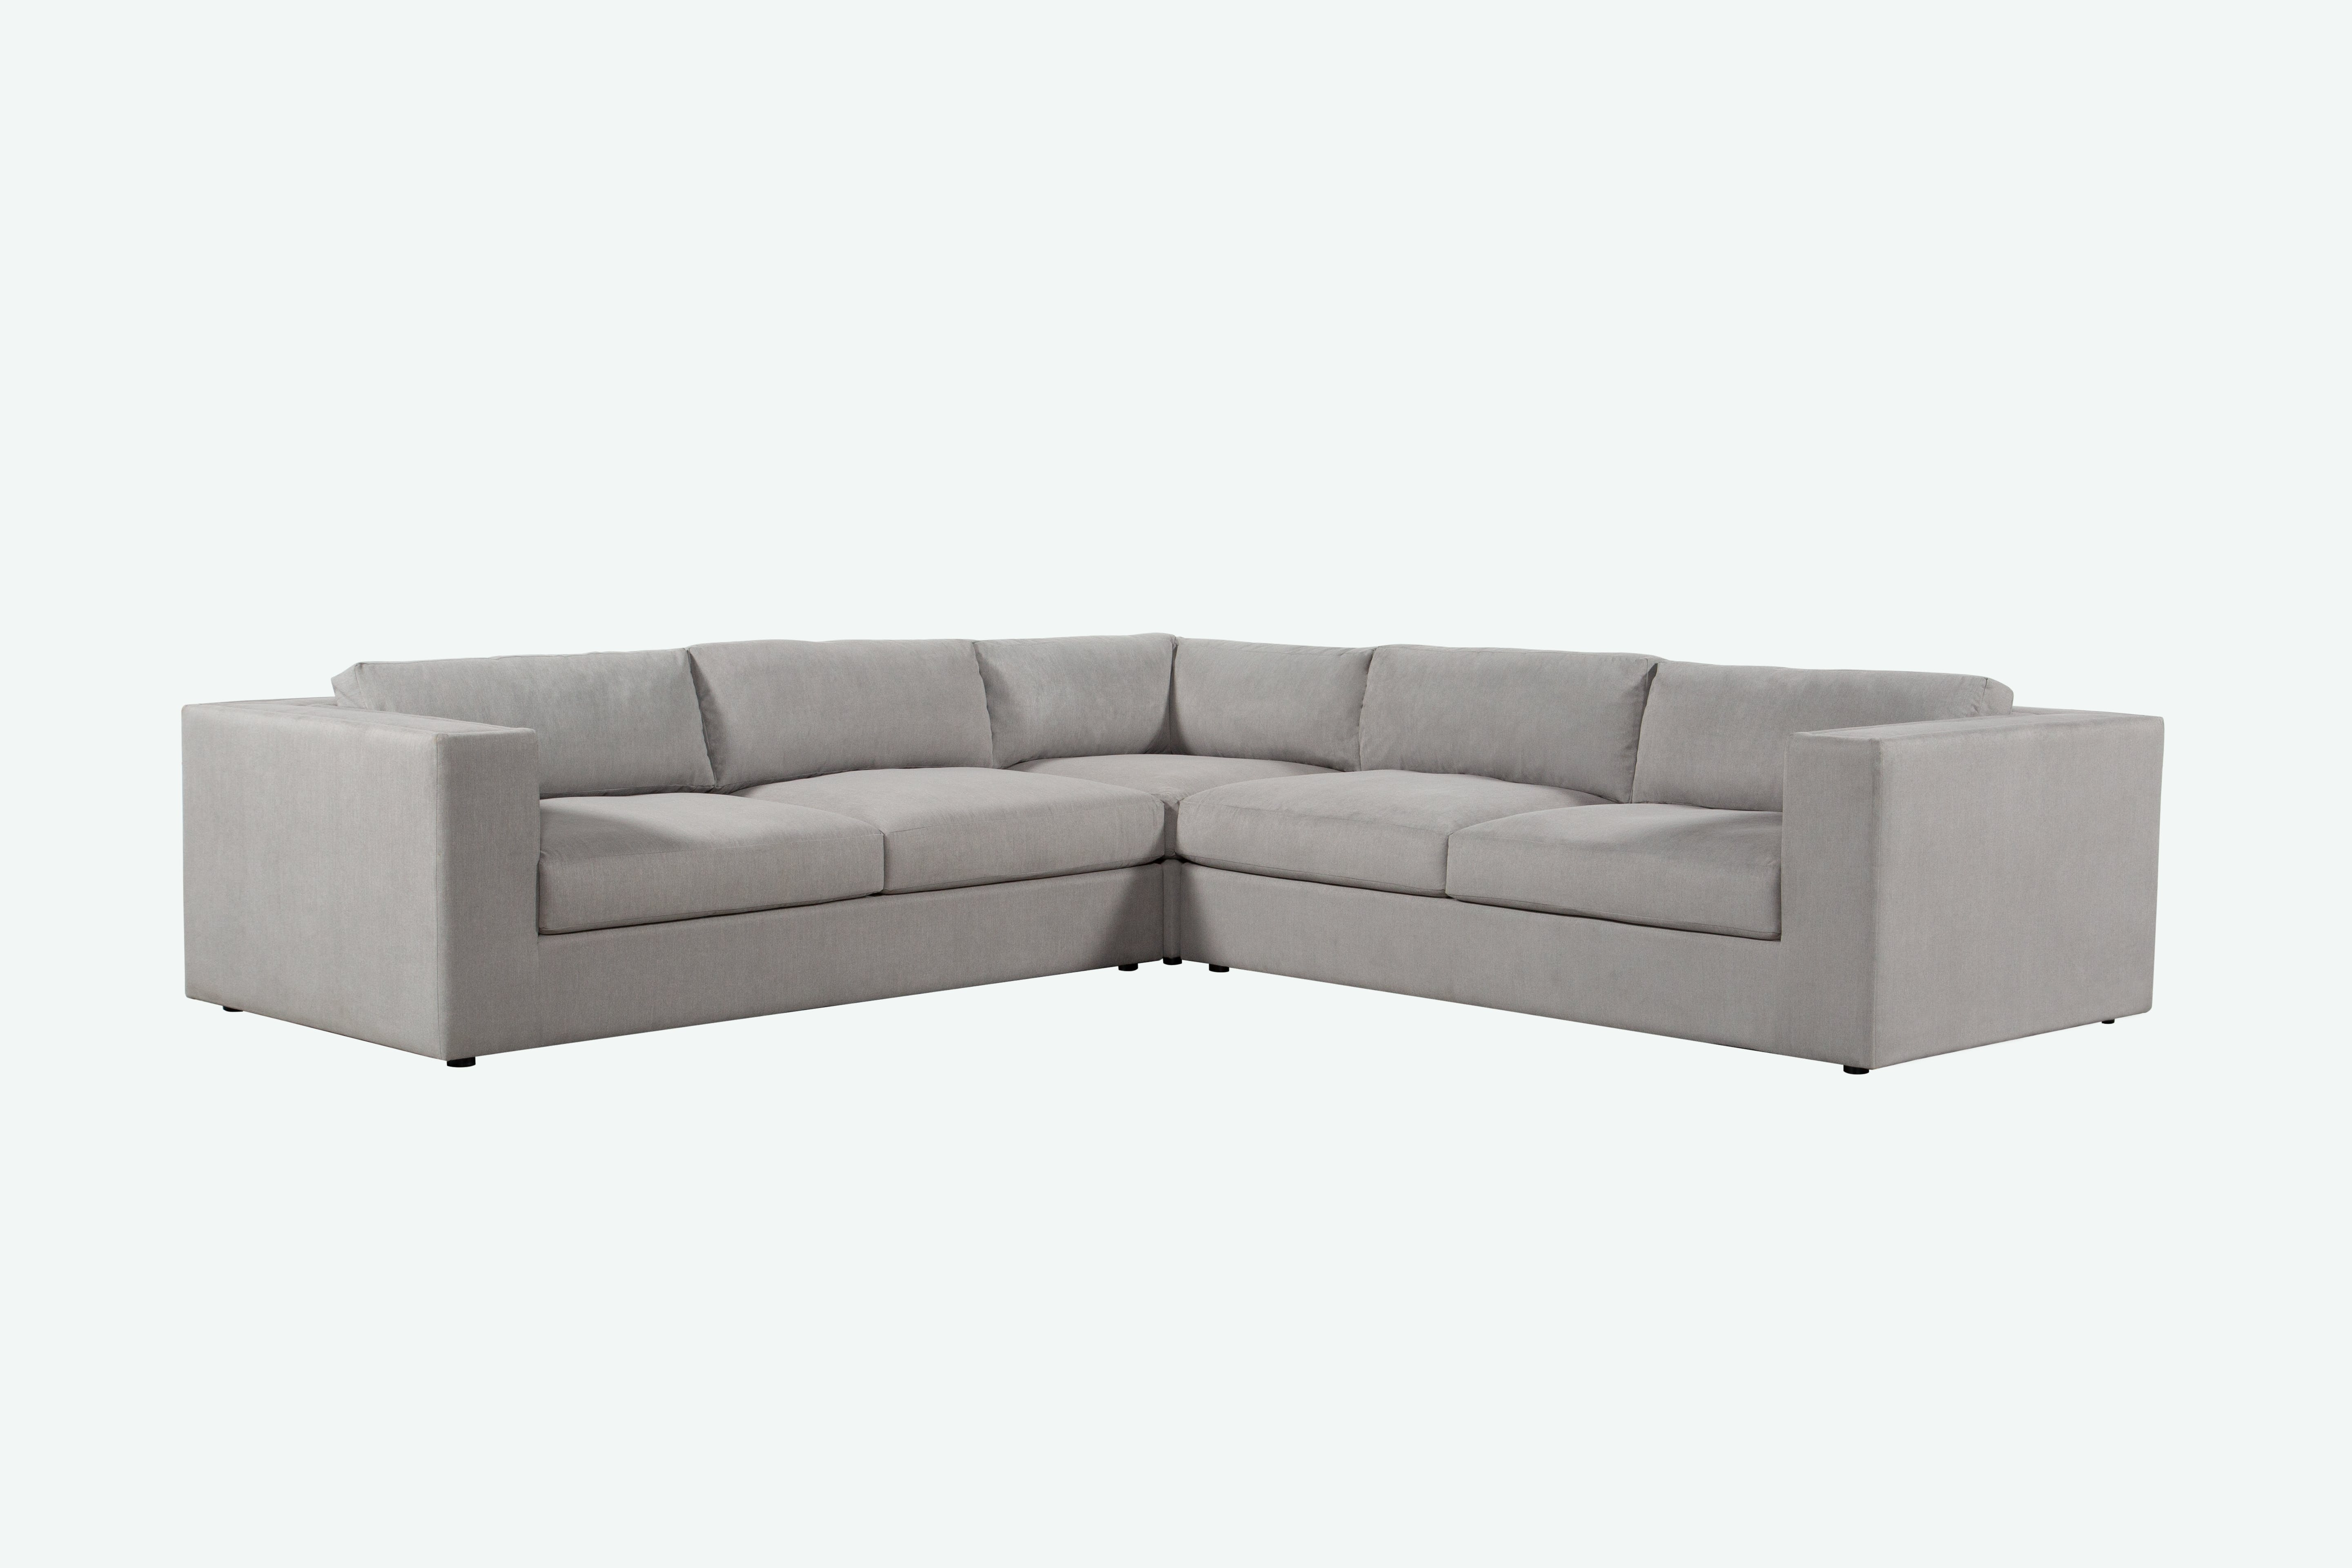 Nate Berkus Just Launched A Home Collection With Hubby Jeremiah with regard to Whitley 3 Piece Sectionals by Nate Berkus and Jeremiah Brent (Image 22 of 32)